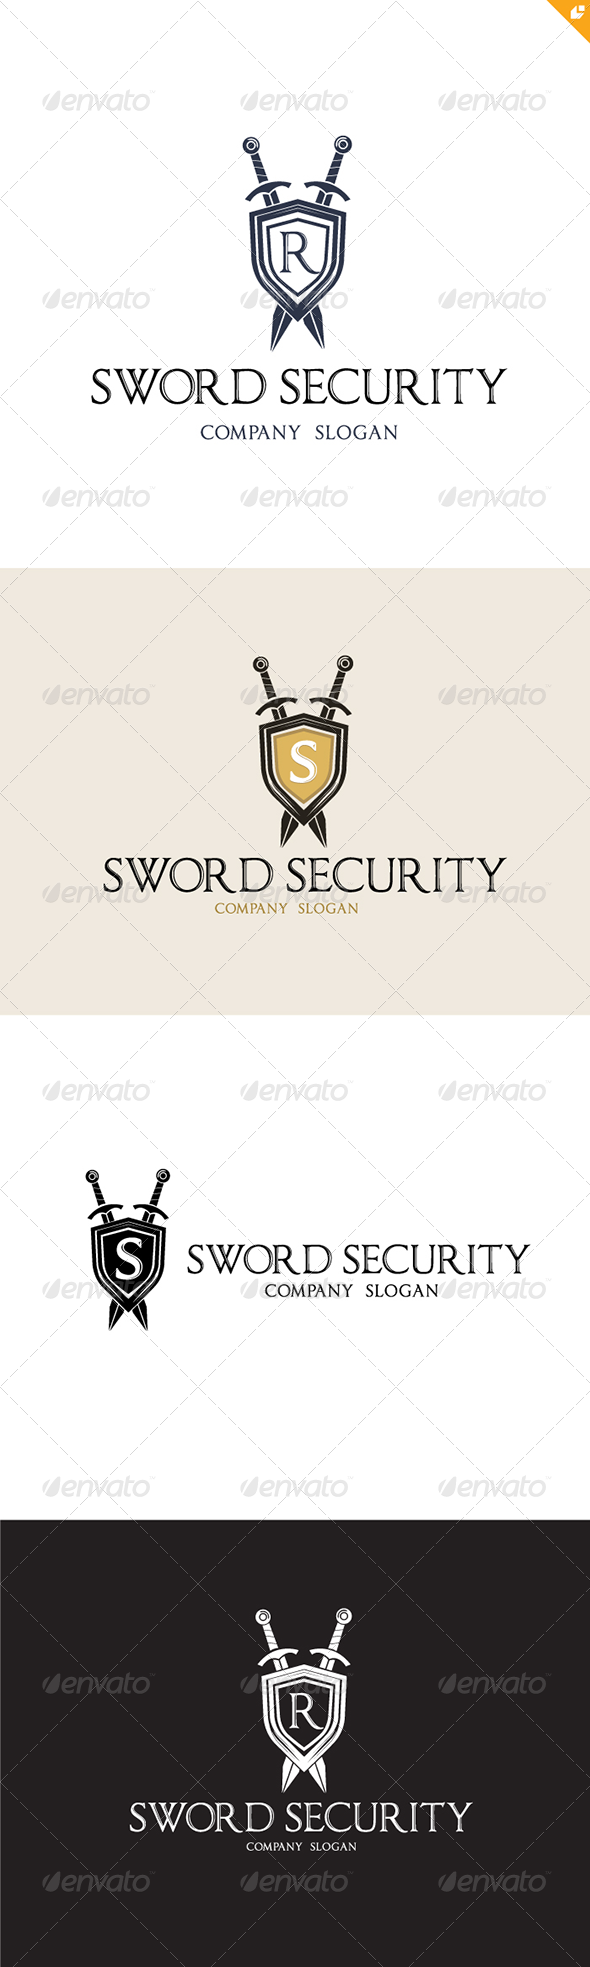 Sword Security Logo - Crests Logo Templates